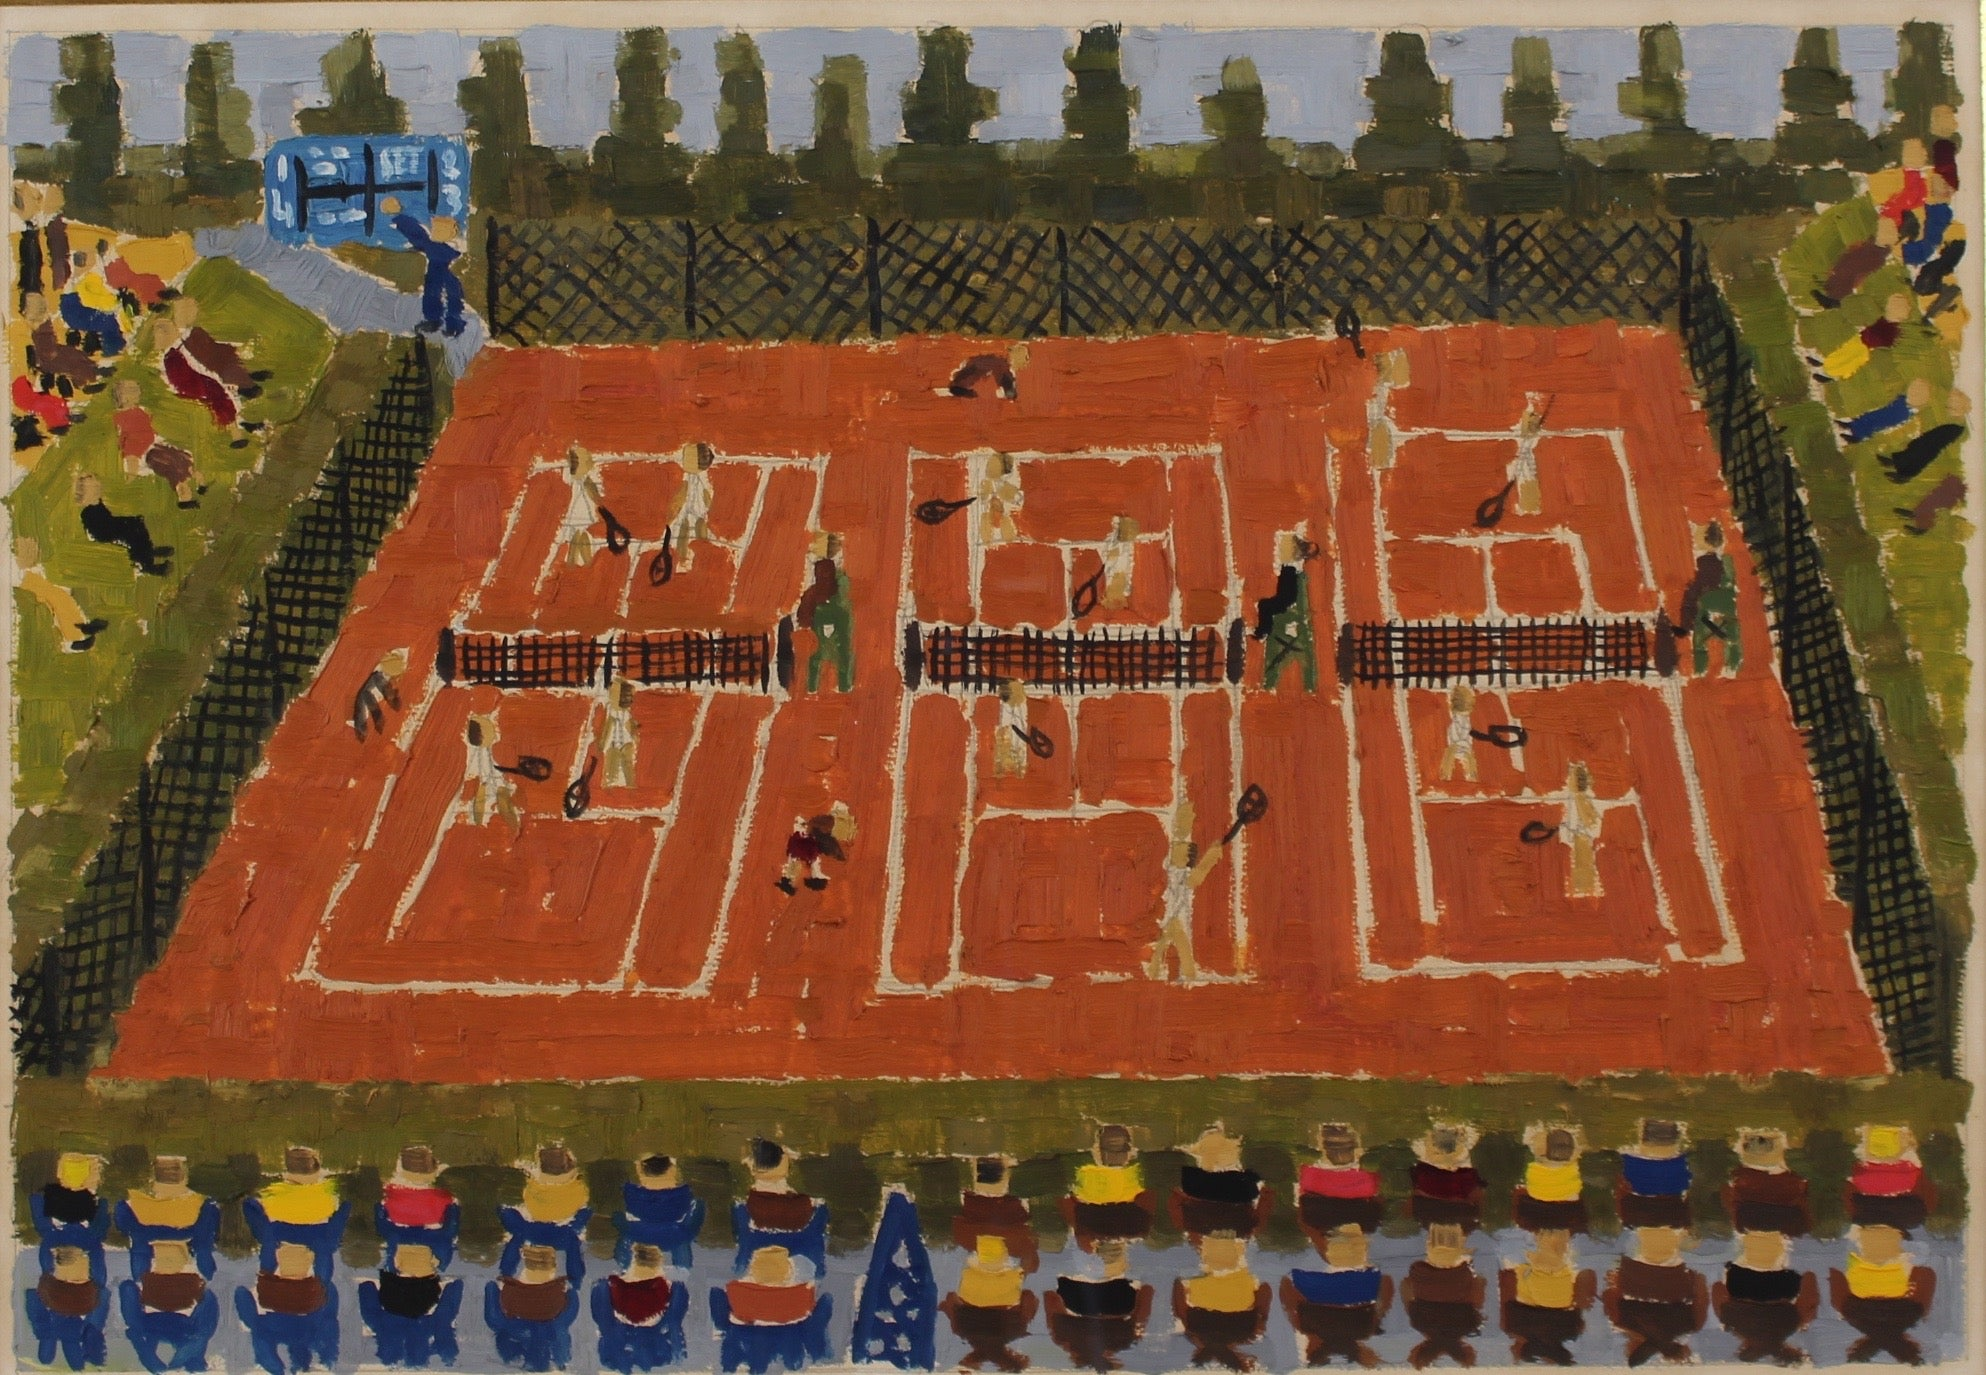 Claud Ambaud Monte Carlo Clay Court Tennis Tournament Painting At